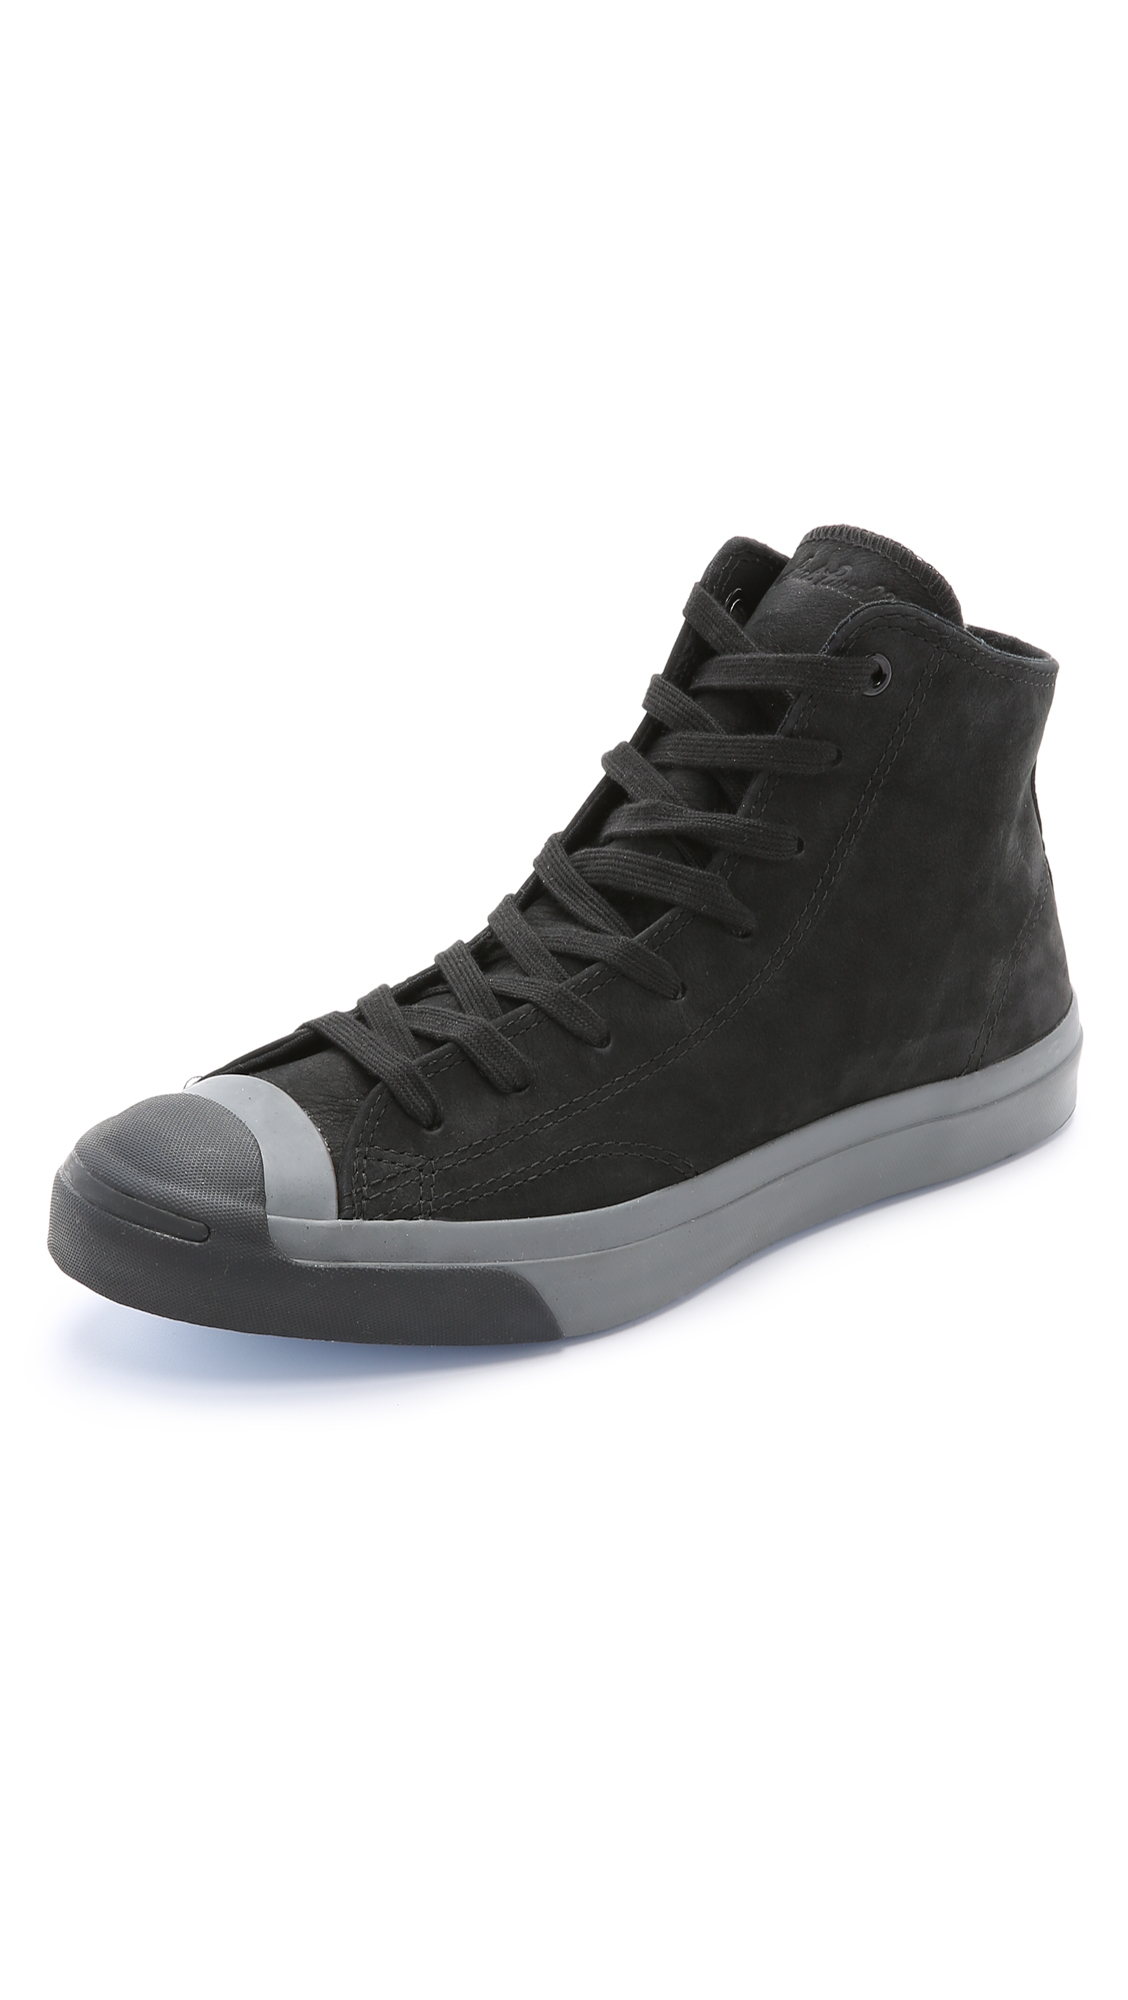 Where To Buy Jack Purcell Shoes